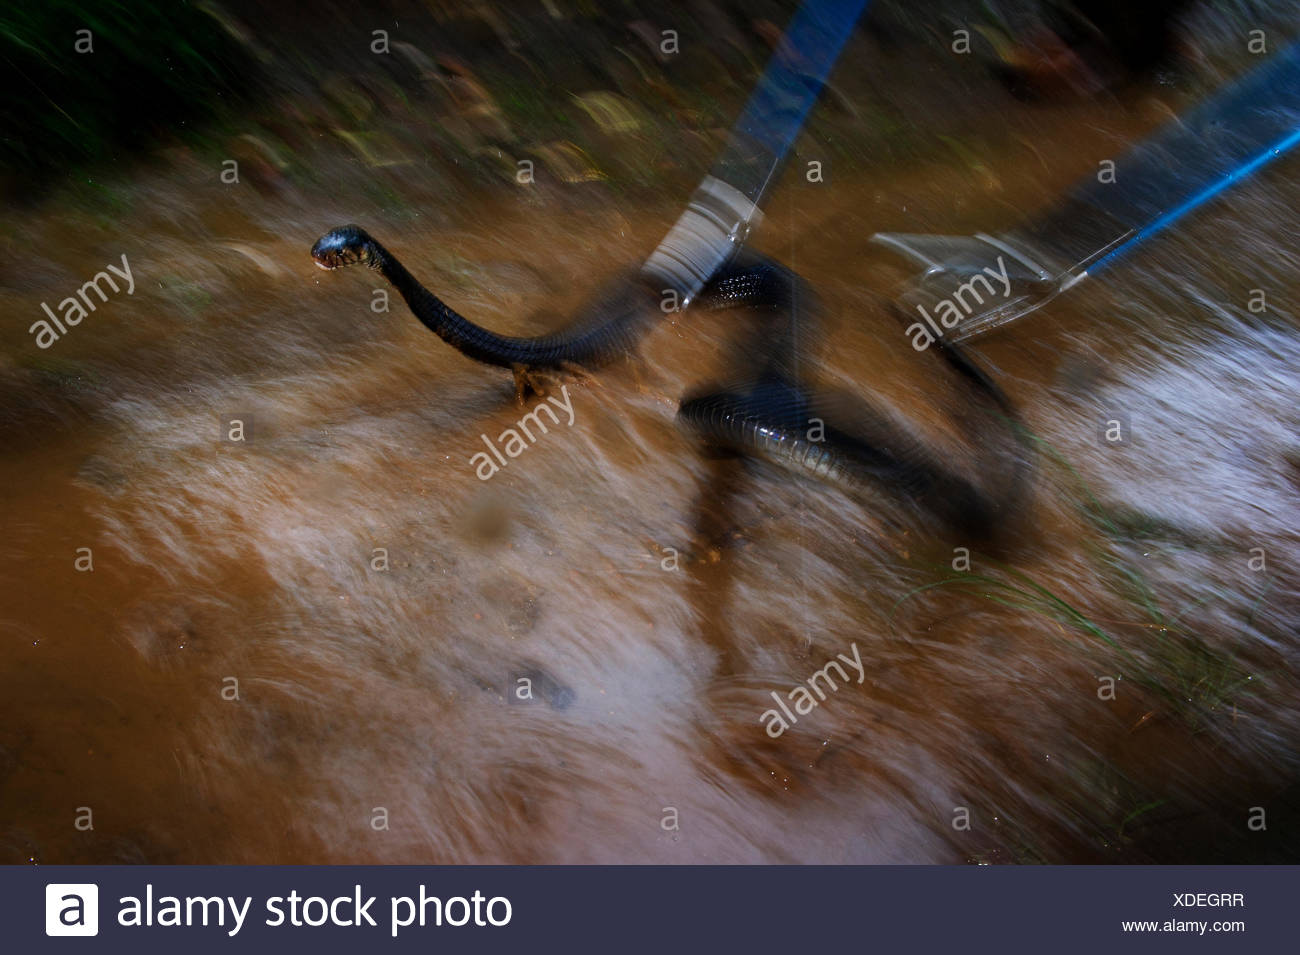 A toxologist catches a venomous forest cobra in the rain. - Stock Image